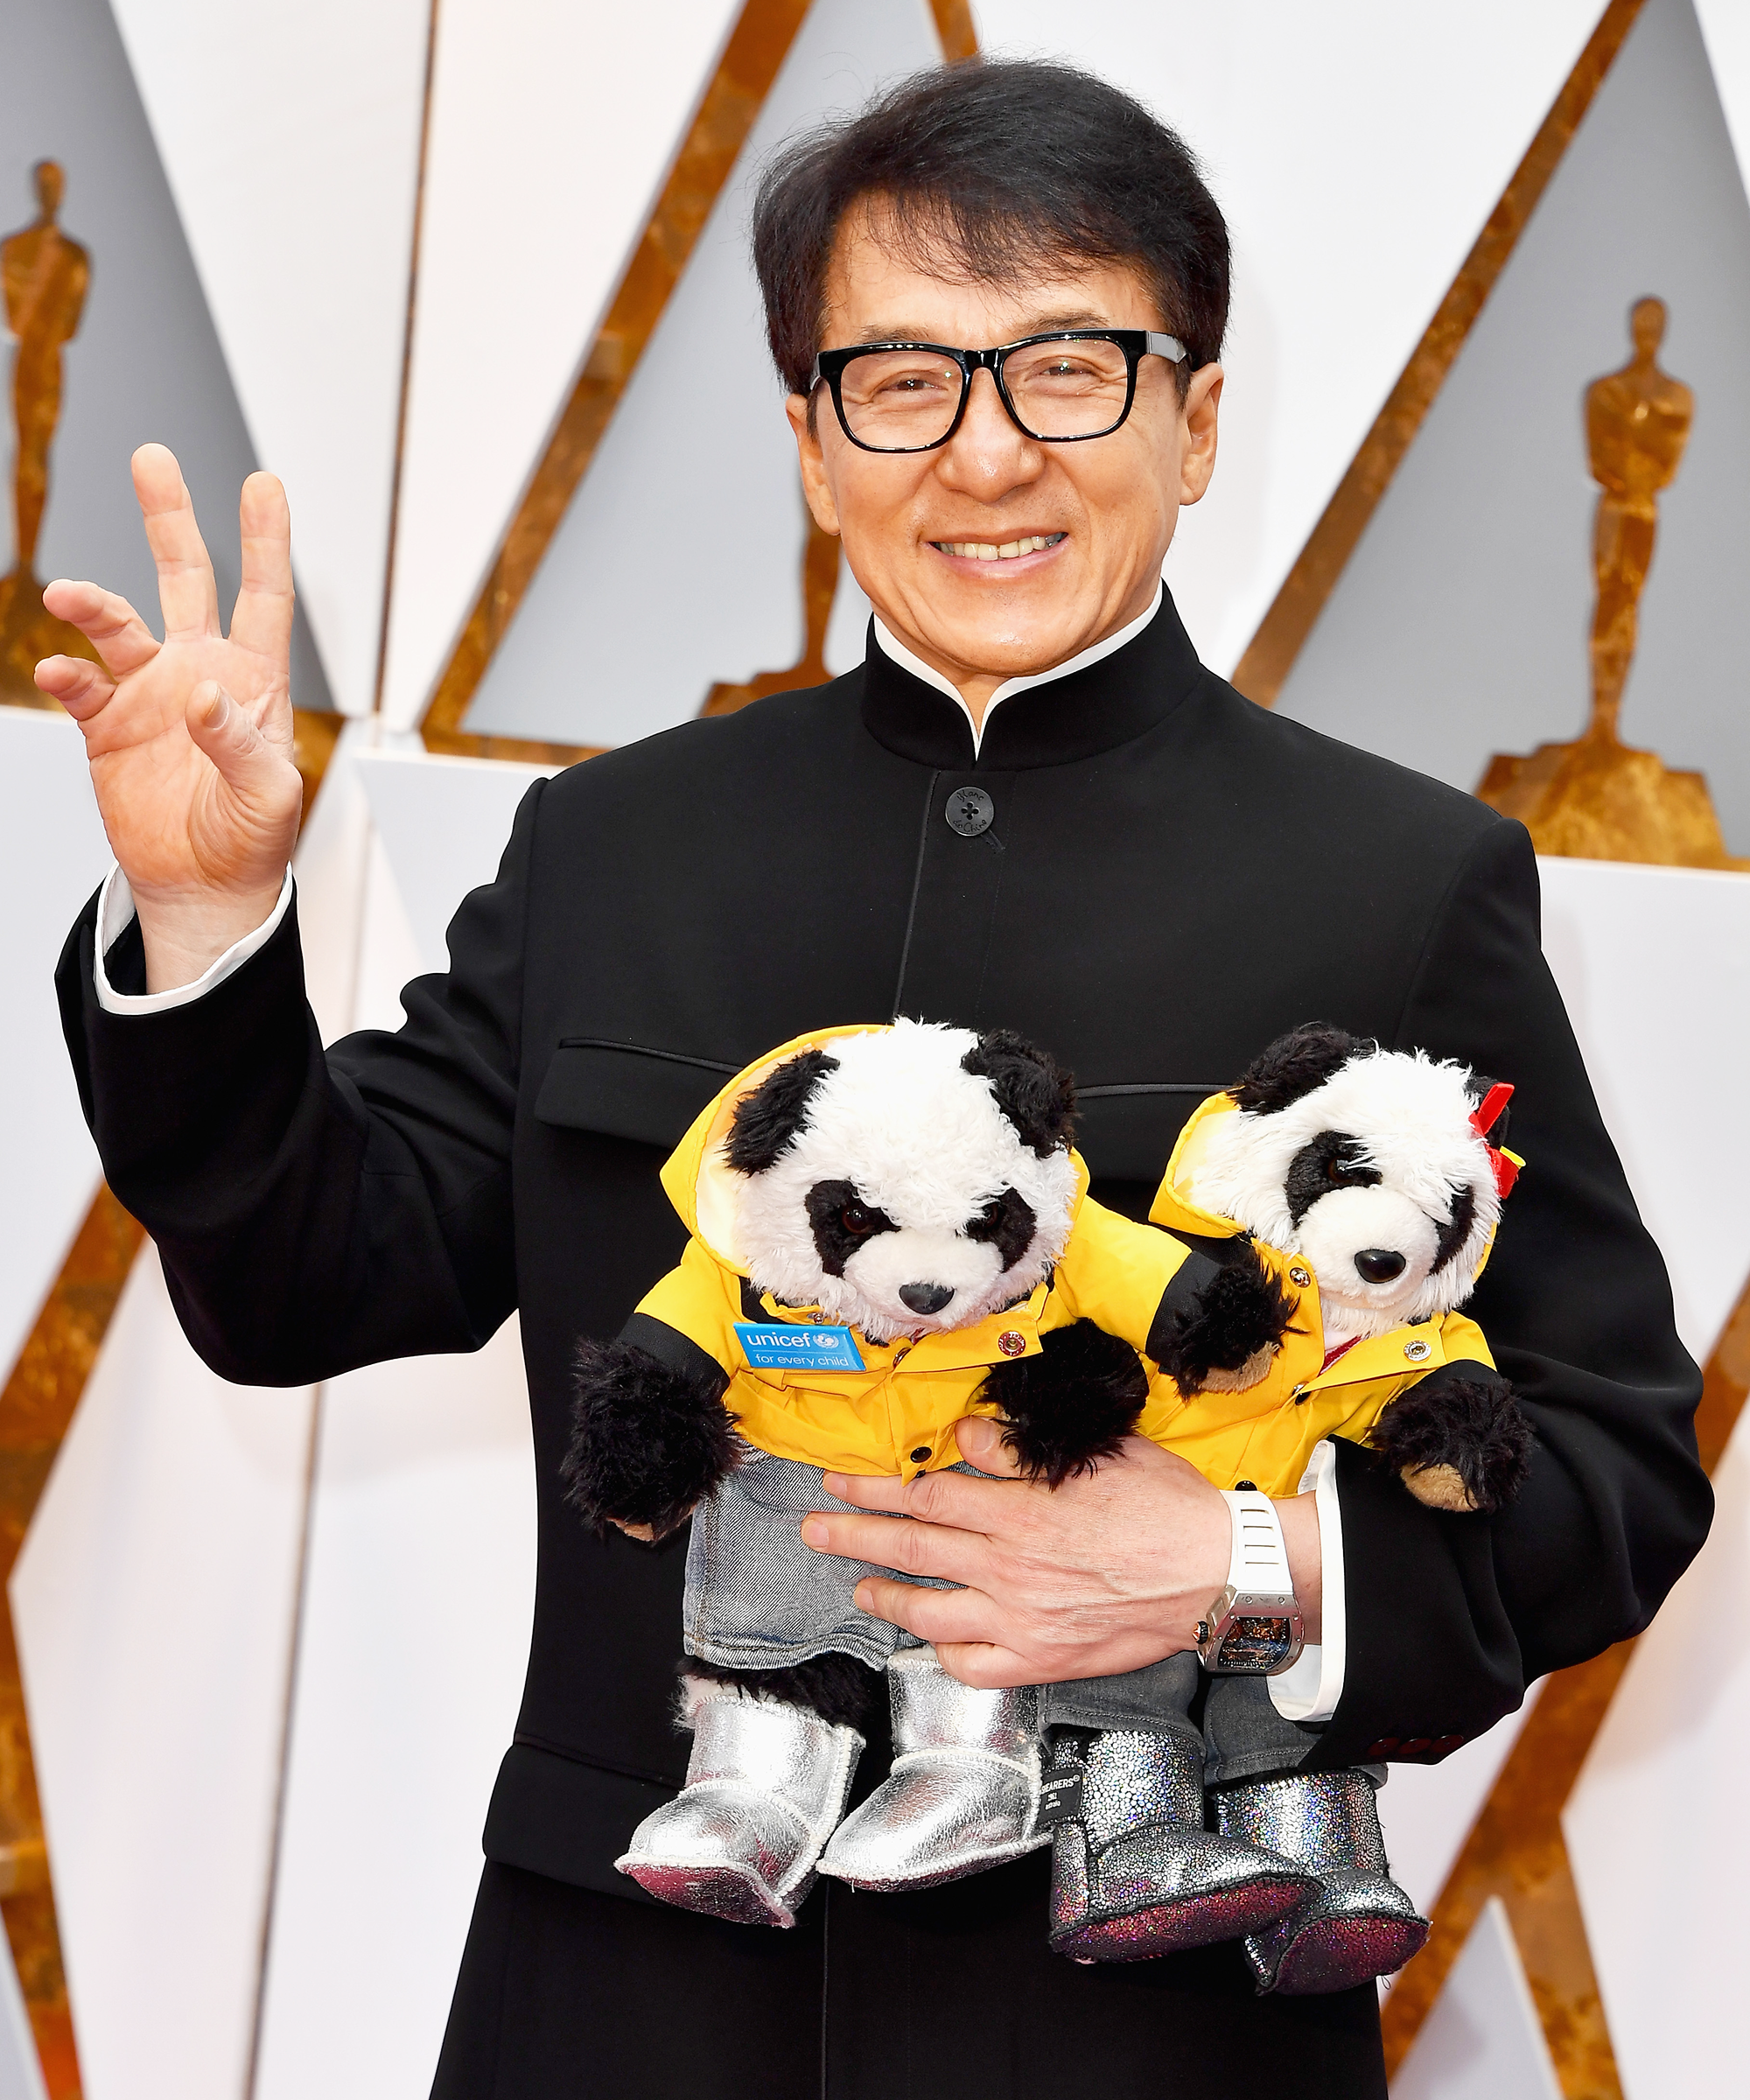 Jackie Chan Brought His Pandas To The Oscars They Wore Uggs Jackie Chan Jackie Bruce Lee Martial Arts